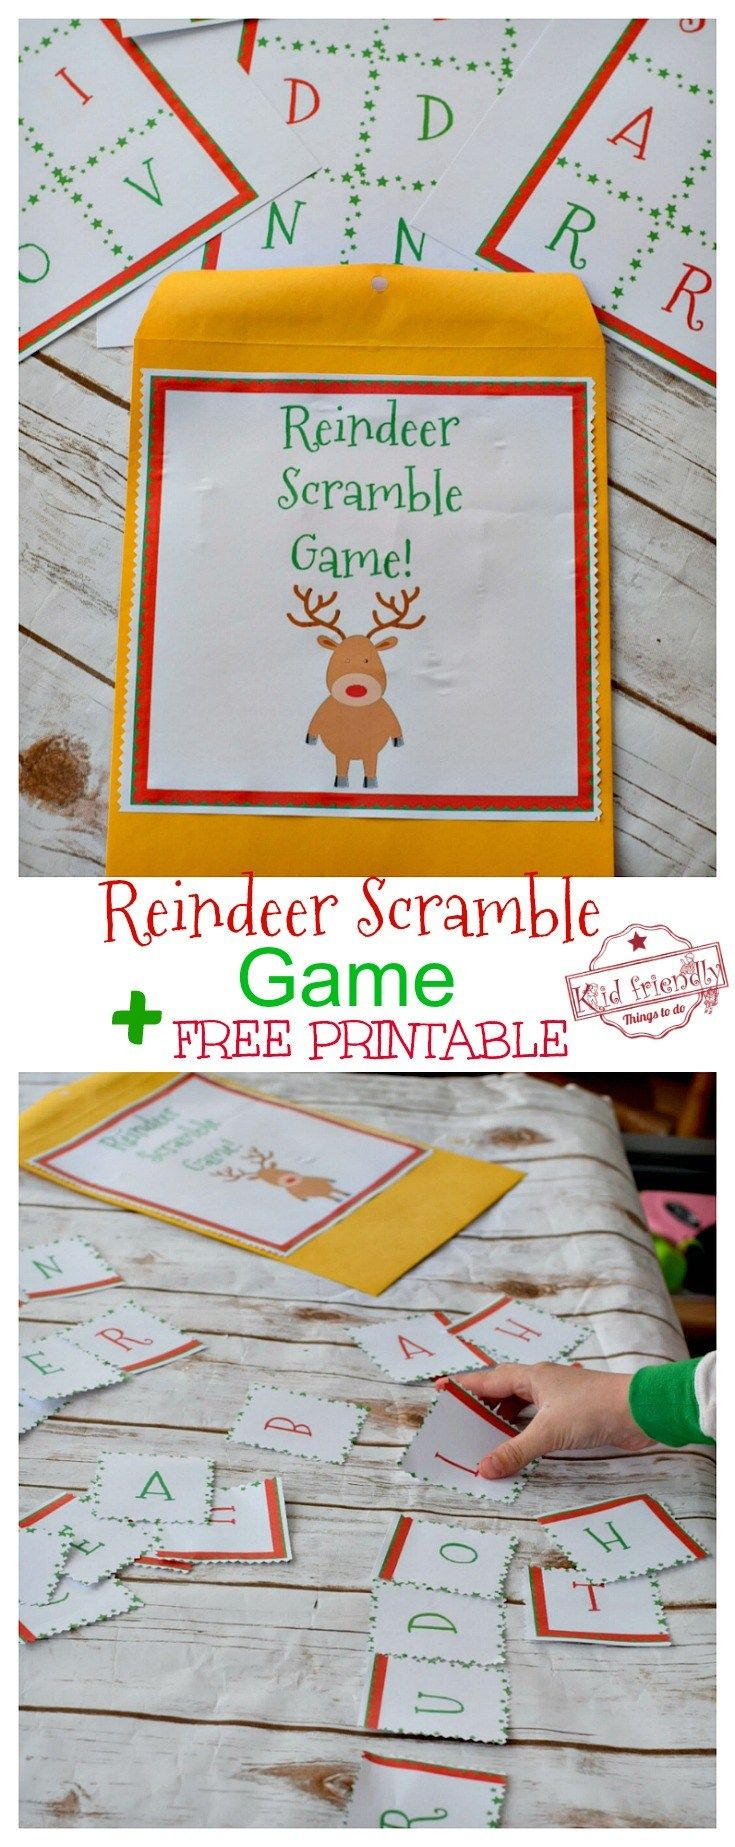 The Reindeer Scramble Game - A Fun Christmas Party Game! Plus FREE ...